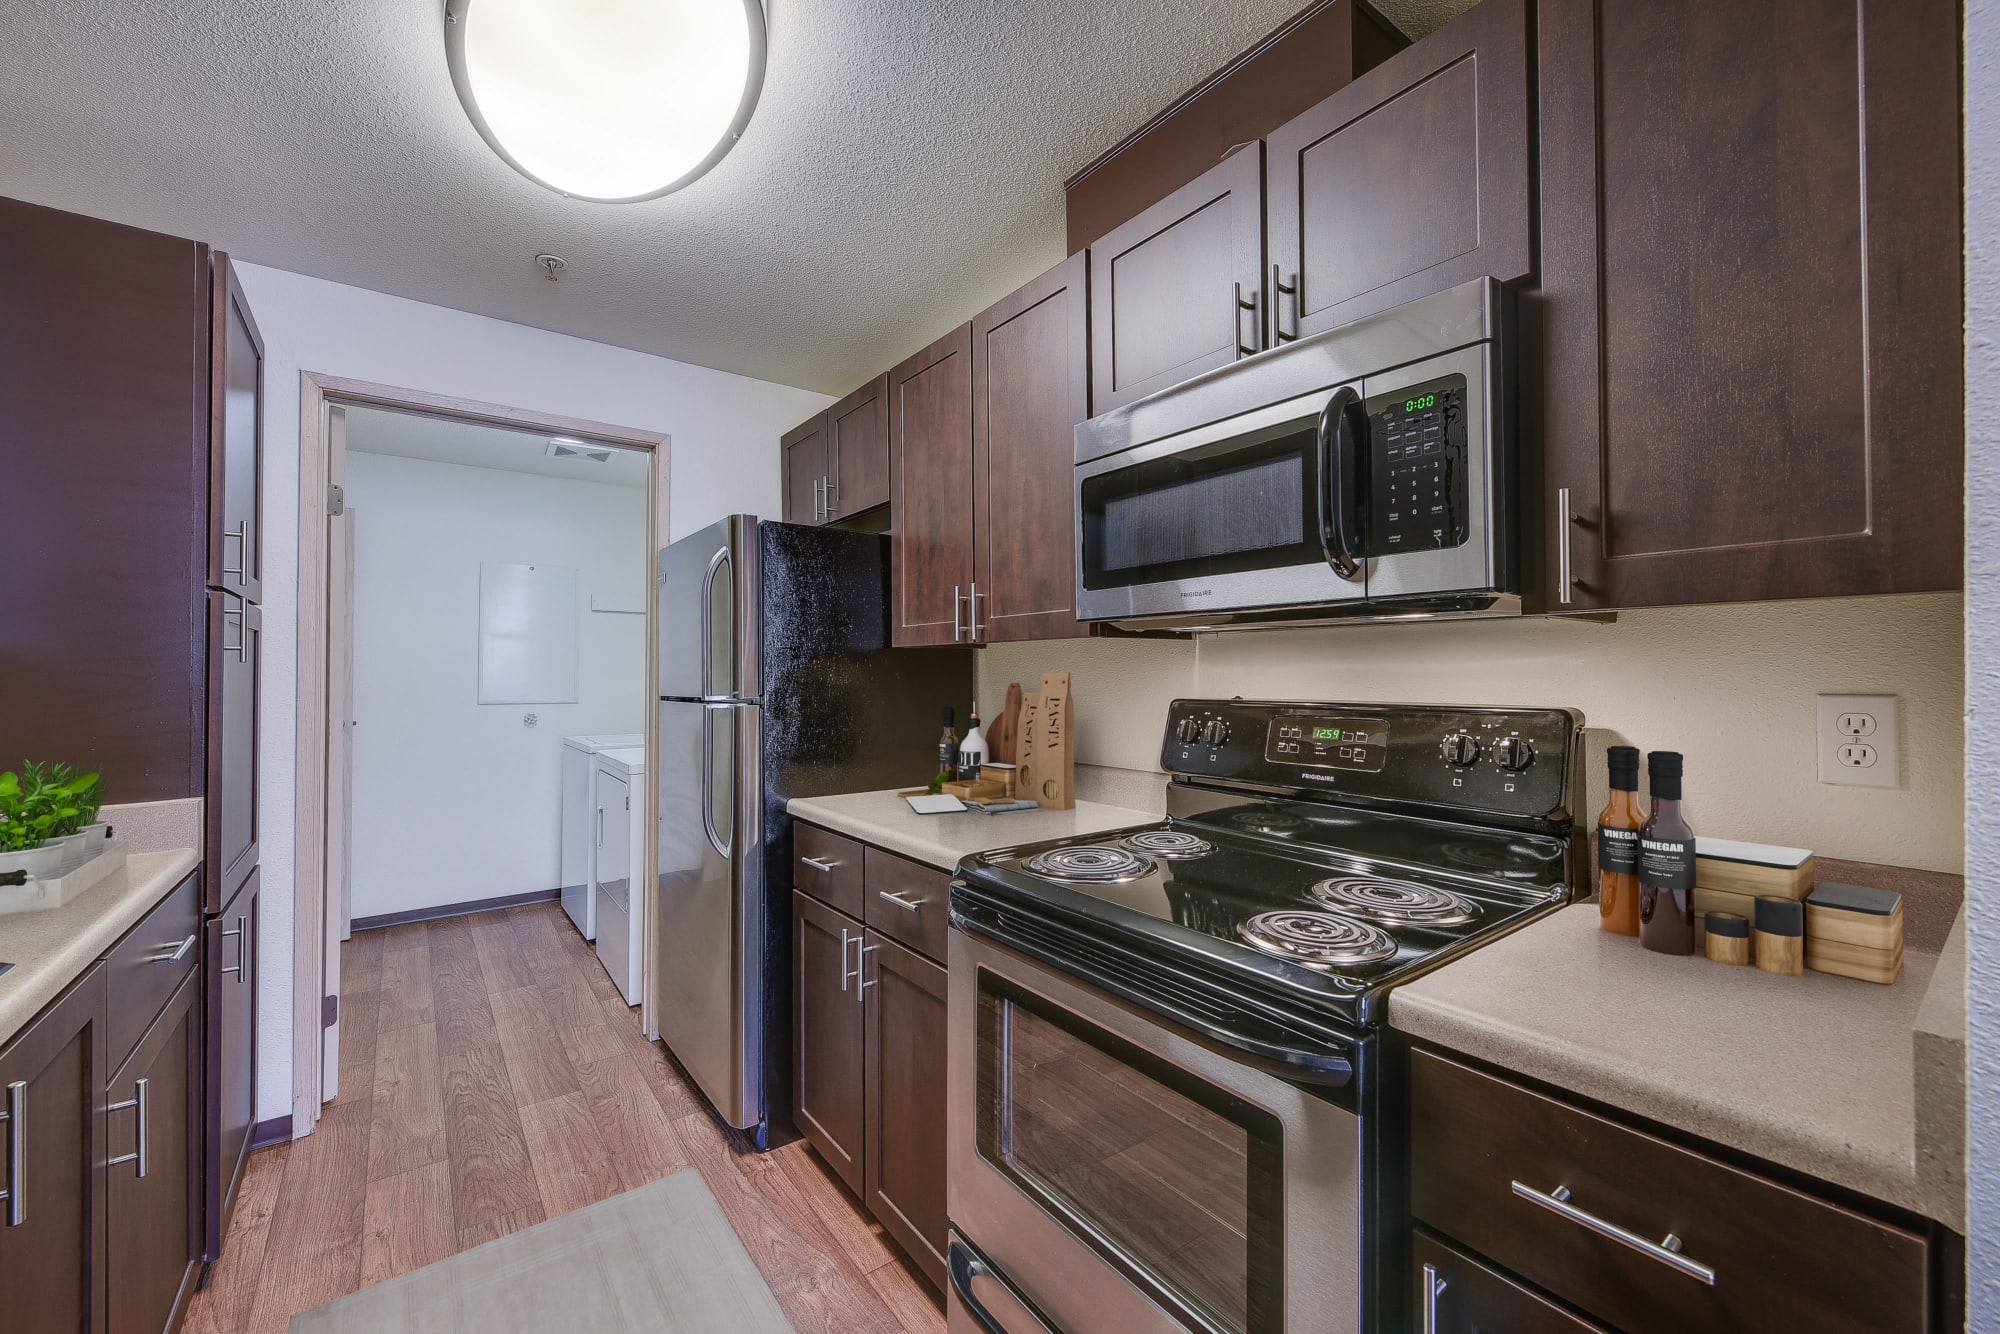 Brown cabinets in a renovated kitchen with stainless steel appliances at Renaissance at 29th Apartments in Vancouver, Washington